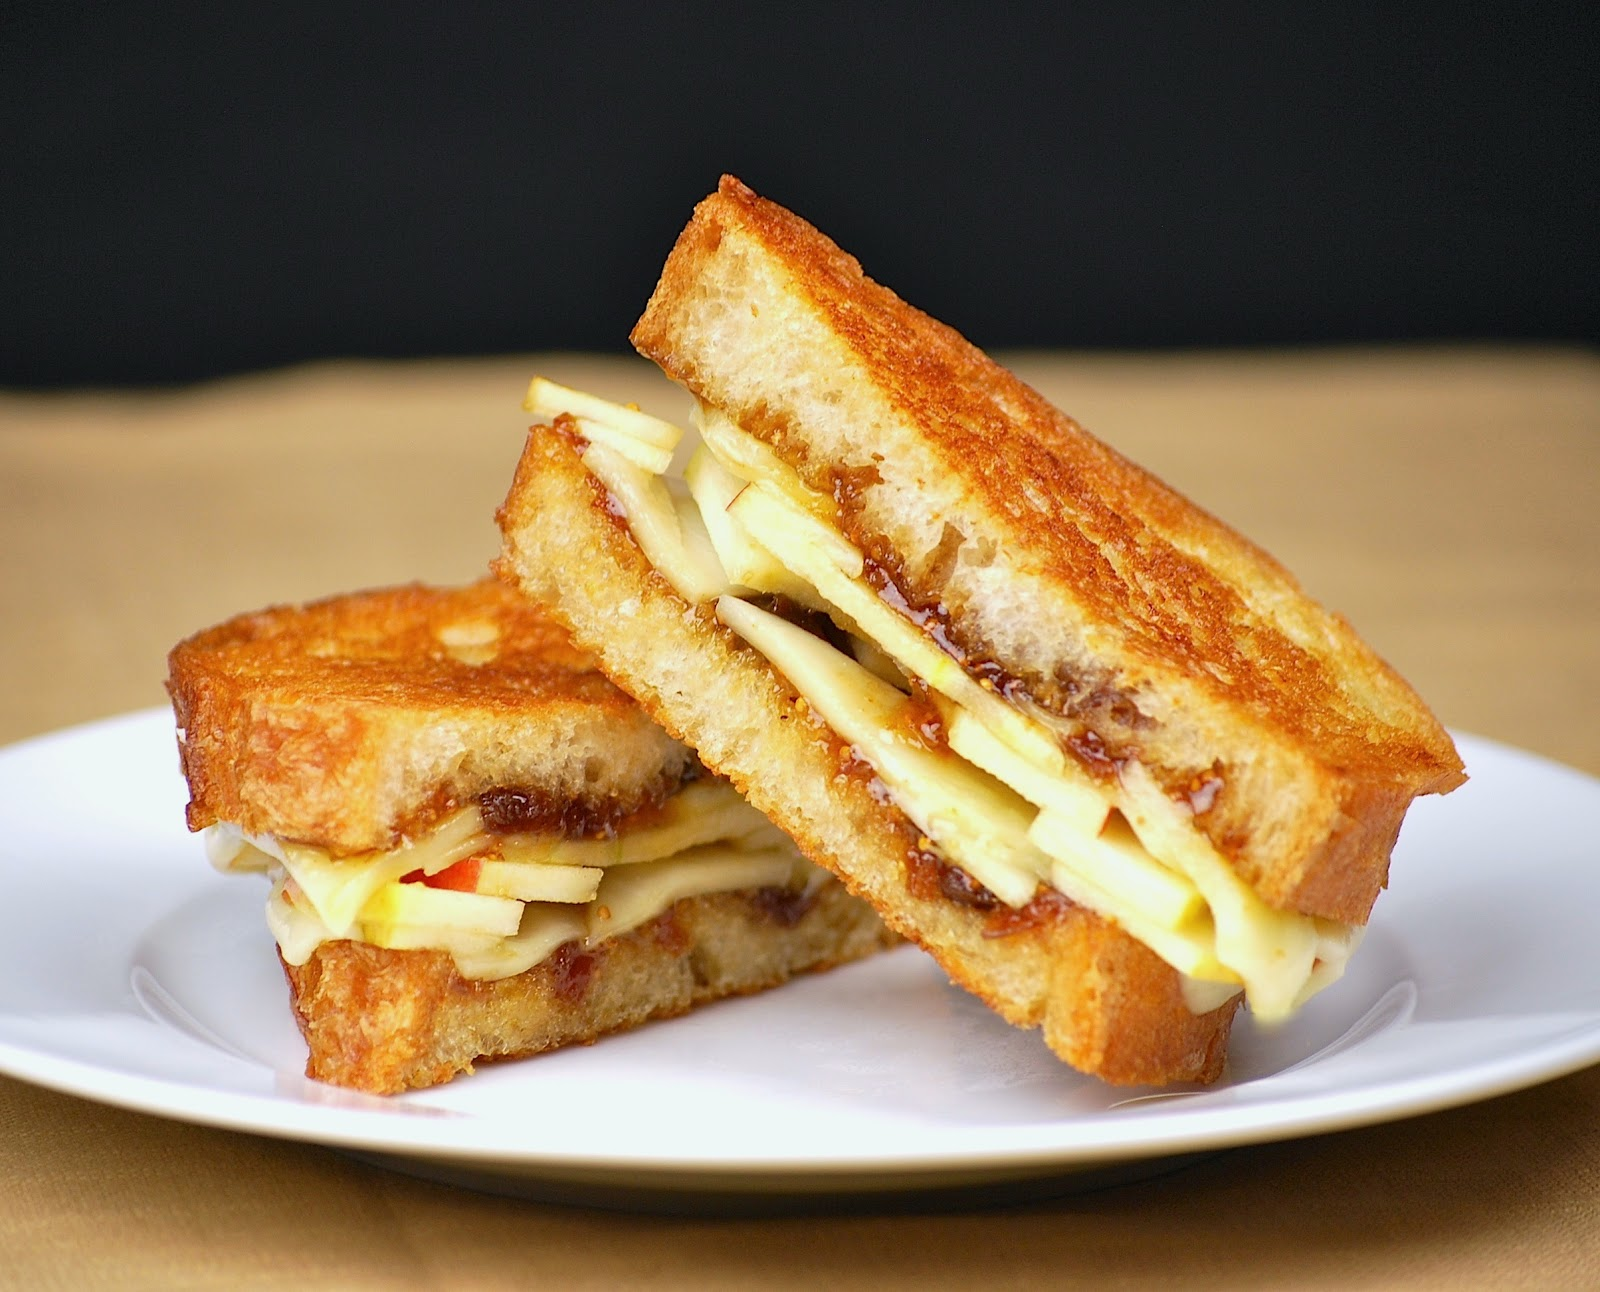 grilled_cheese_sandwich_2.jpg